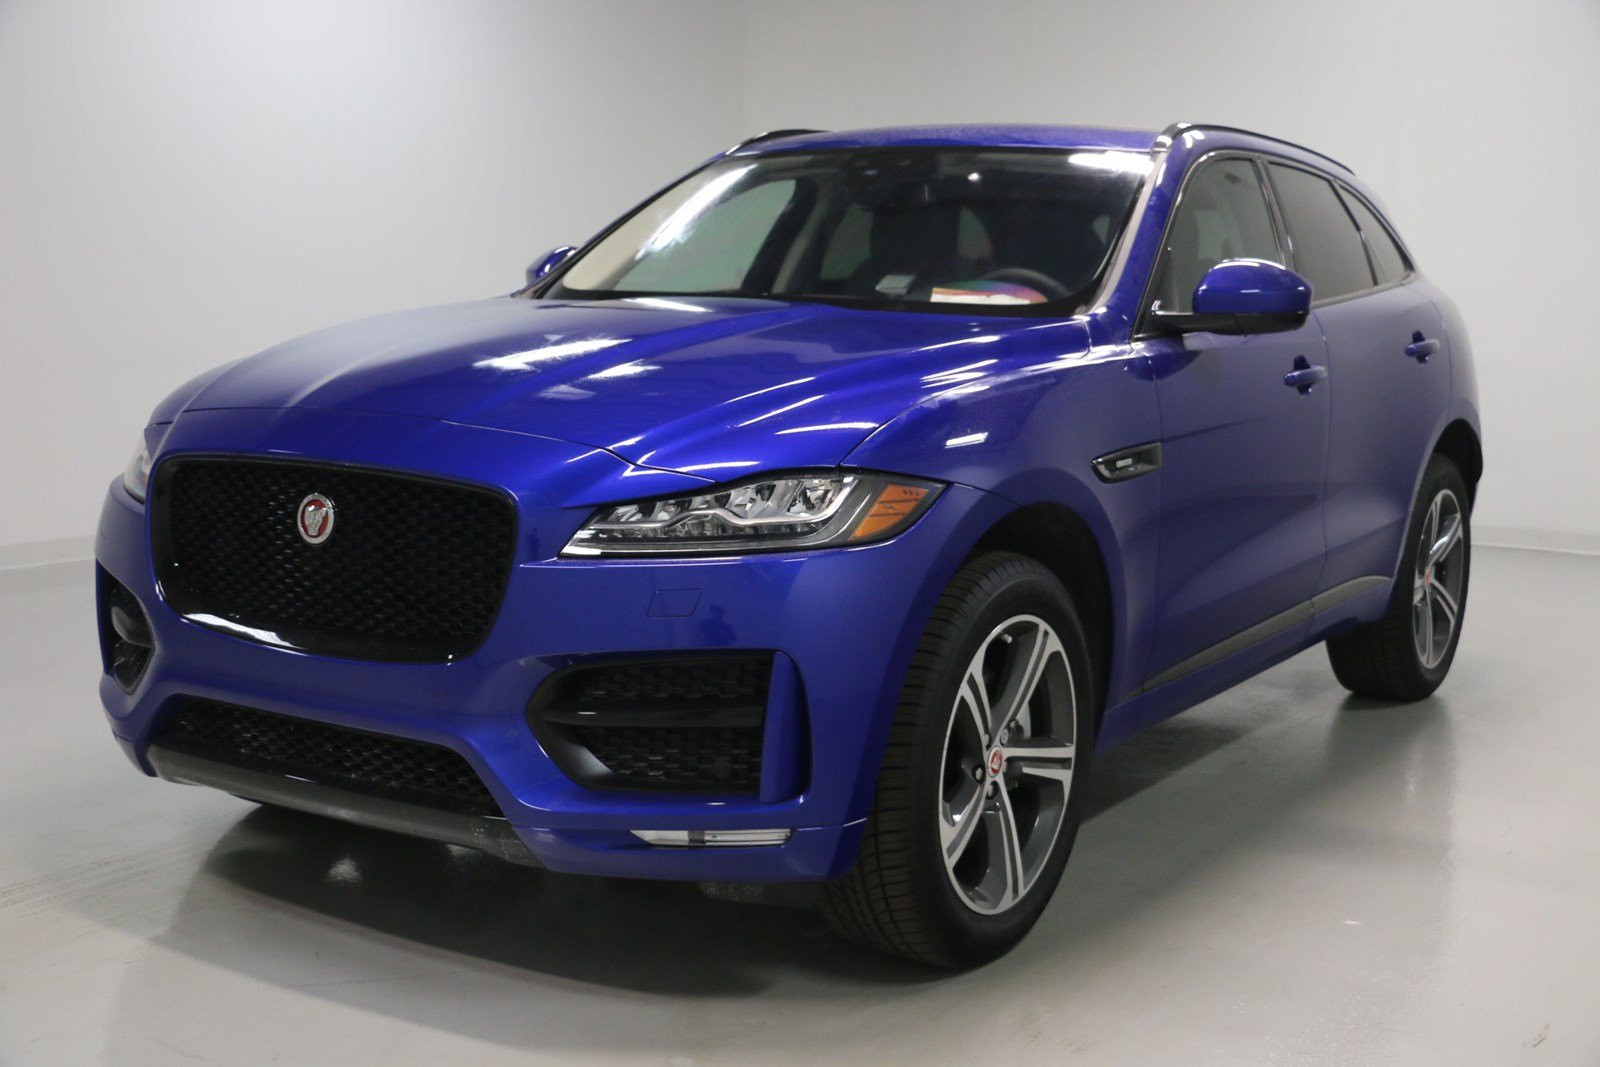 new 2018 jaguar f pace 35t r sport sport utility in elmhurst j1673 jaguar elmhurst. Black Bedroom Furniture Sets. Home Design Ideas